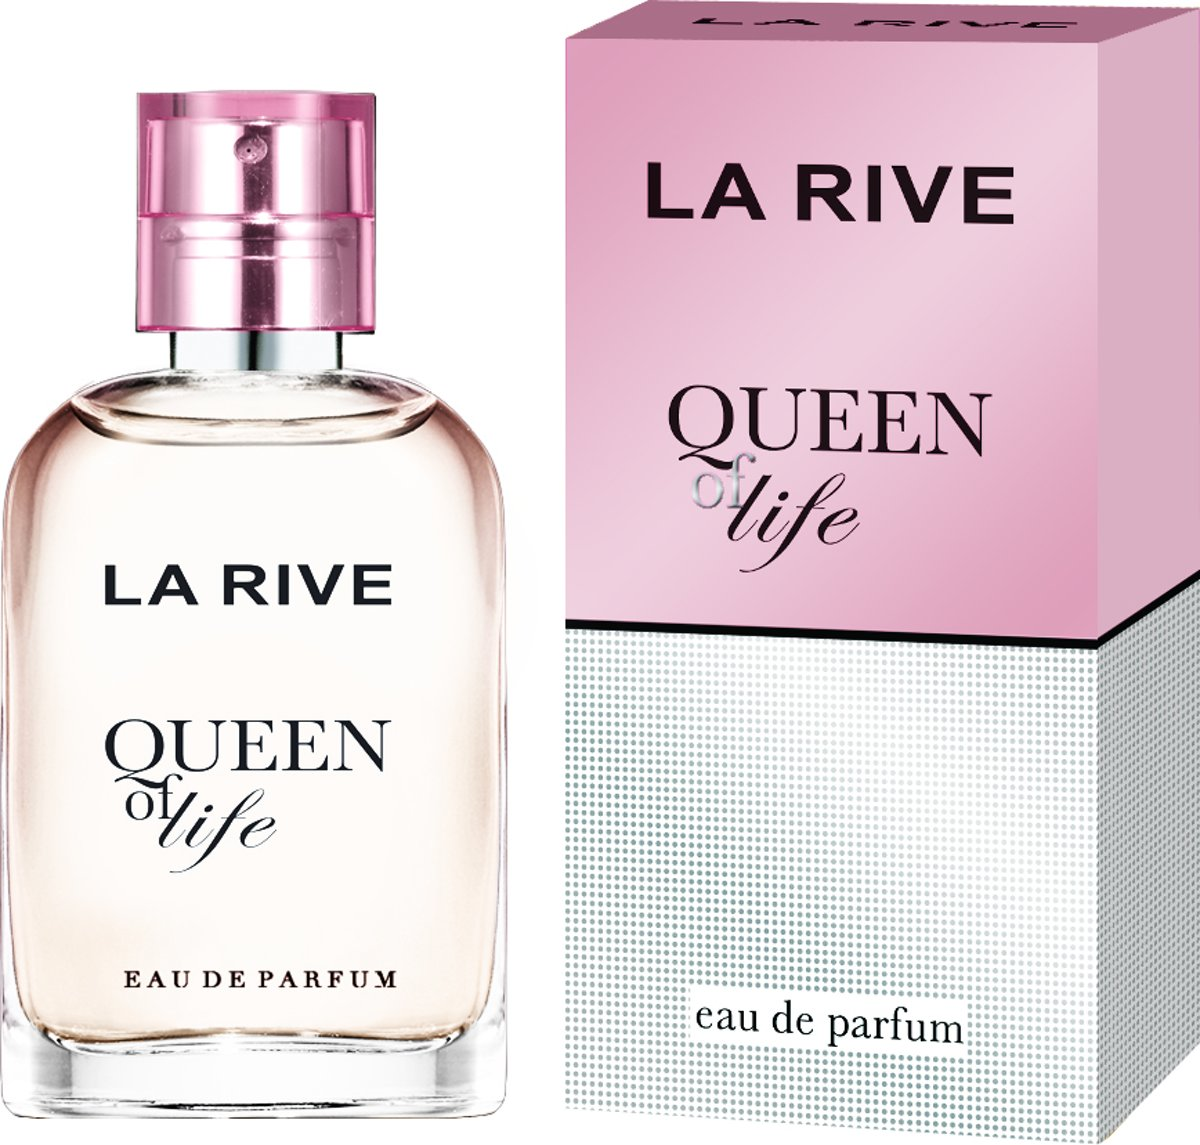 Queen of Life 30 ml - La Rive